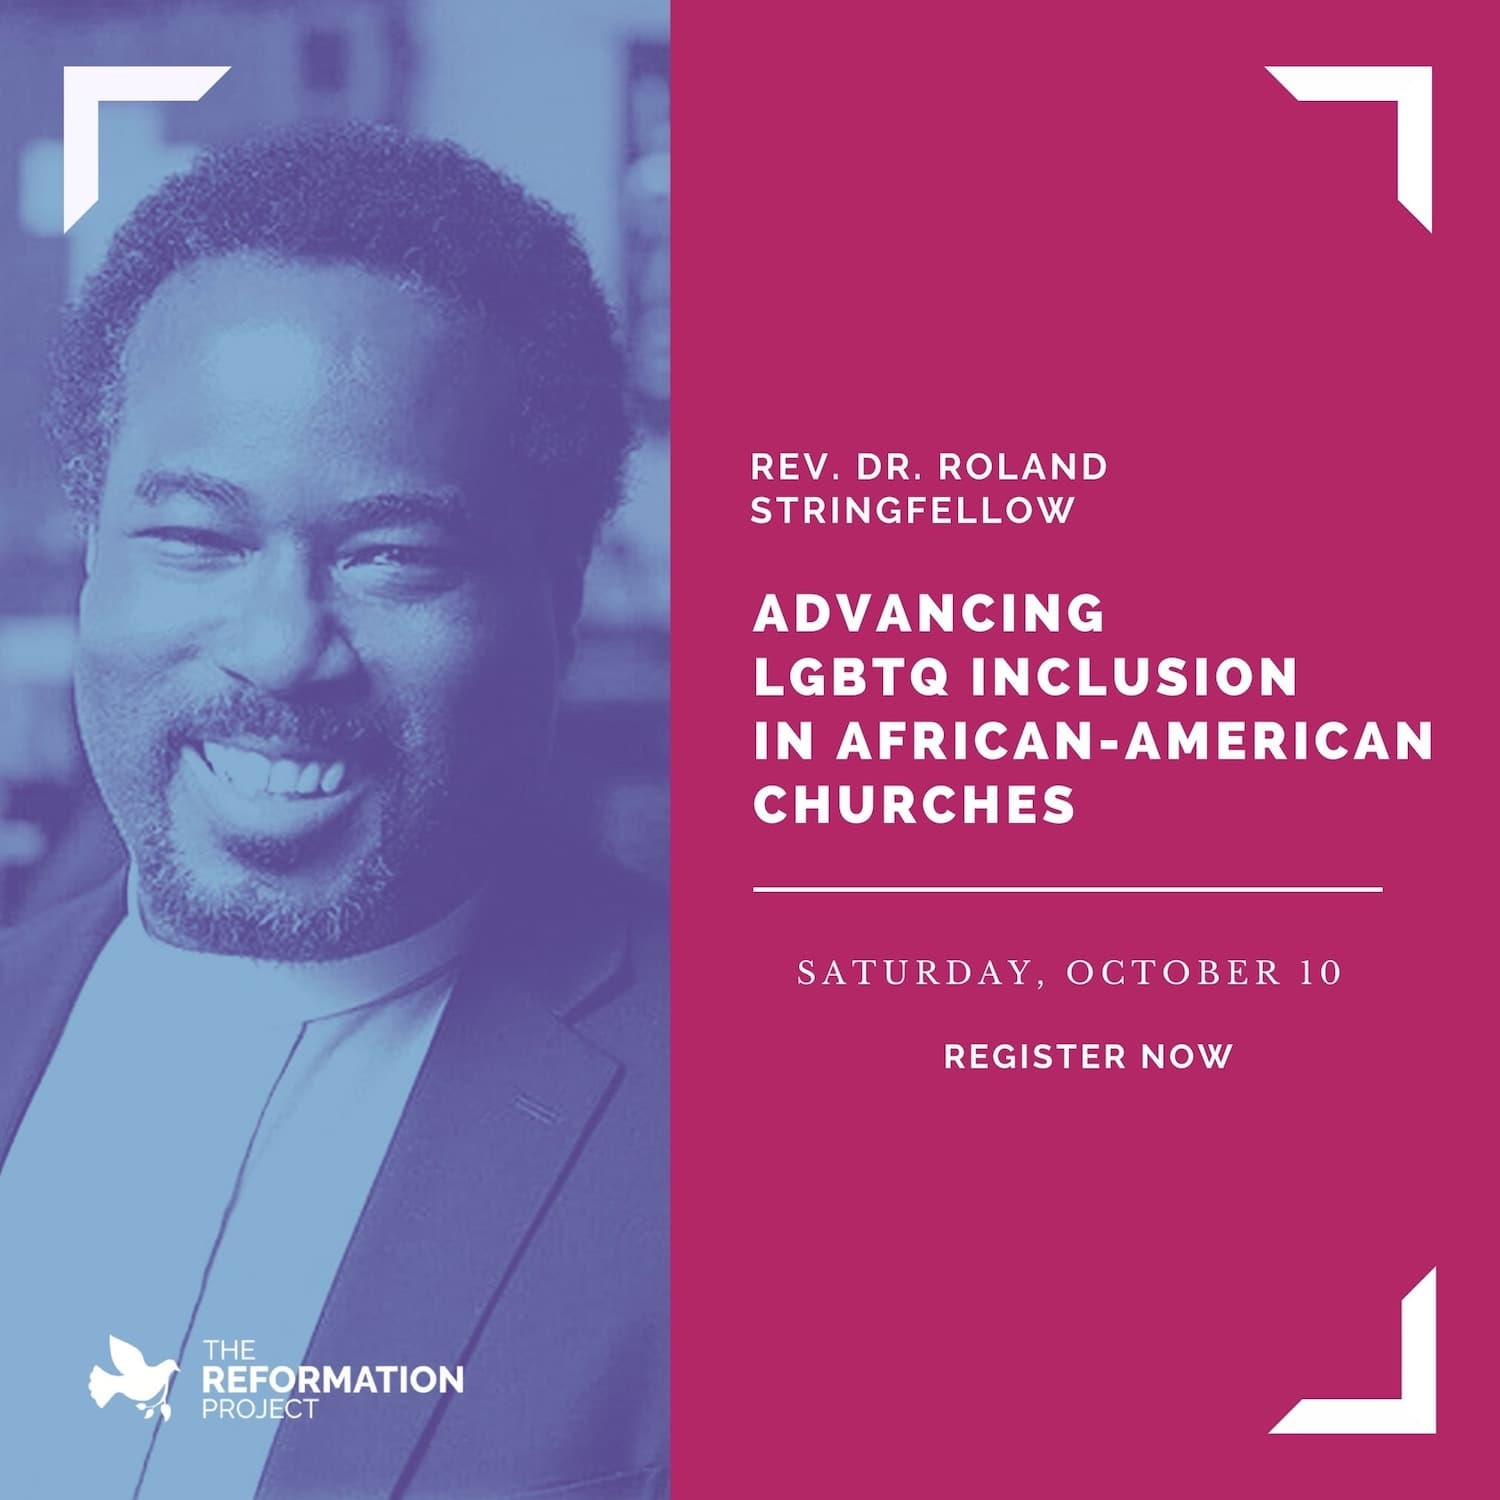 Reconcile and Reform Webinar with Rev. Dr. Roland Stringfellow - Advancing LGBTQ Inclusion in African-American Churches